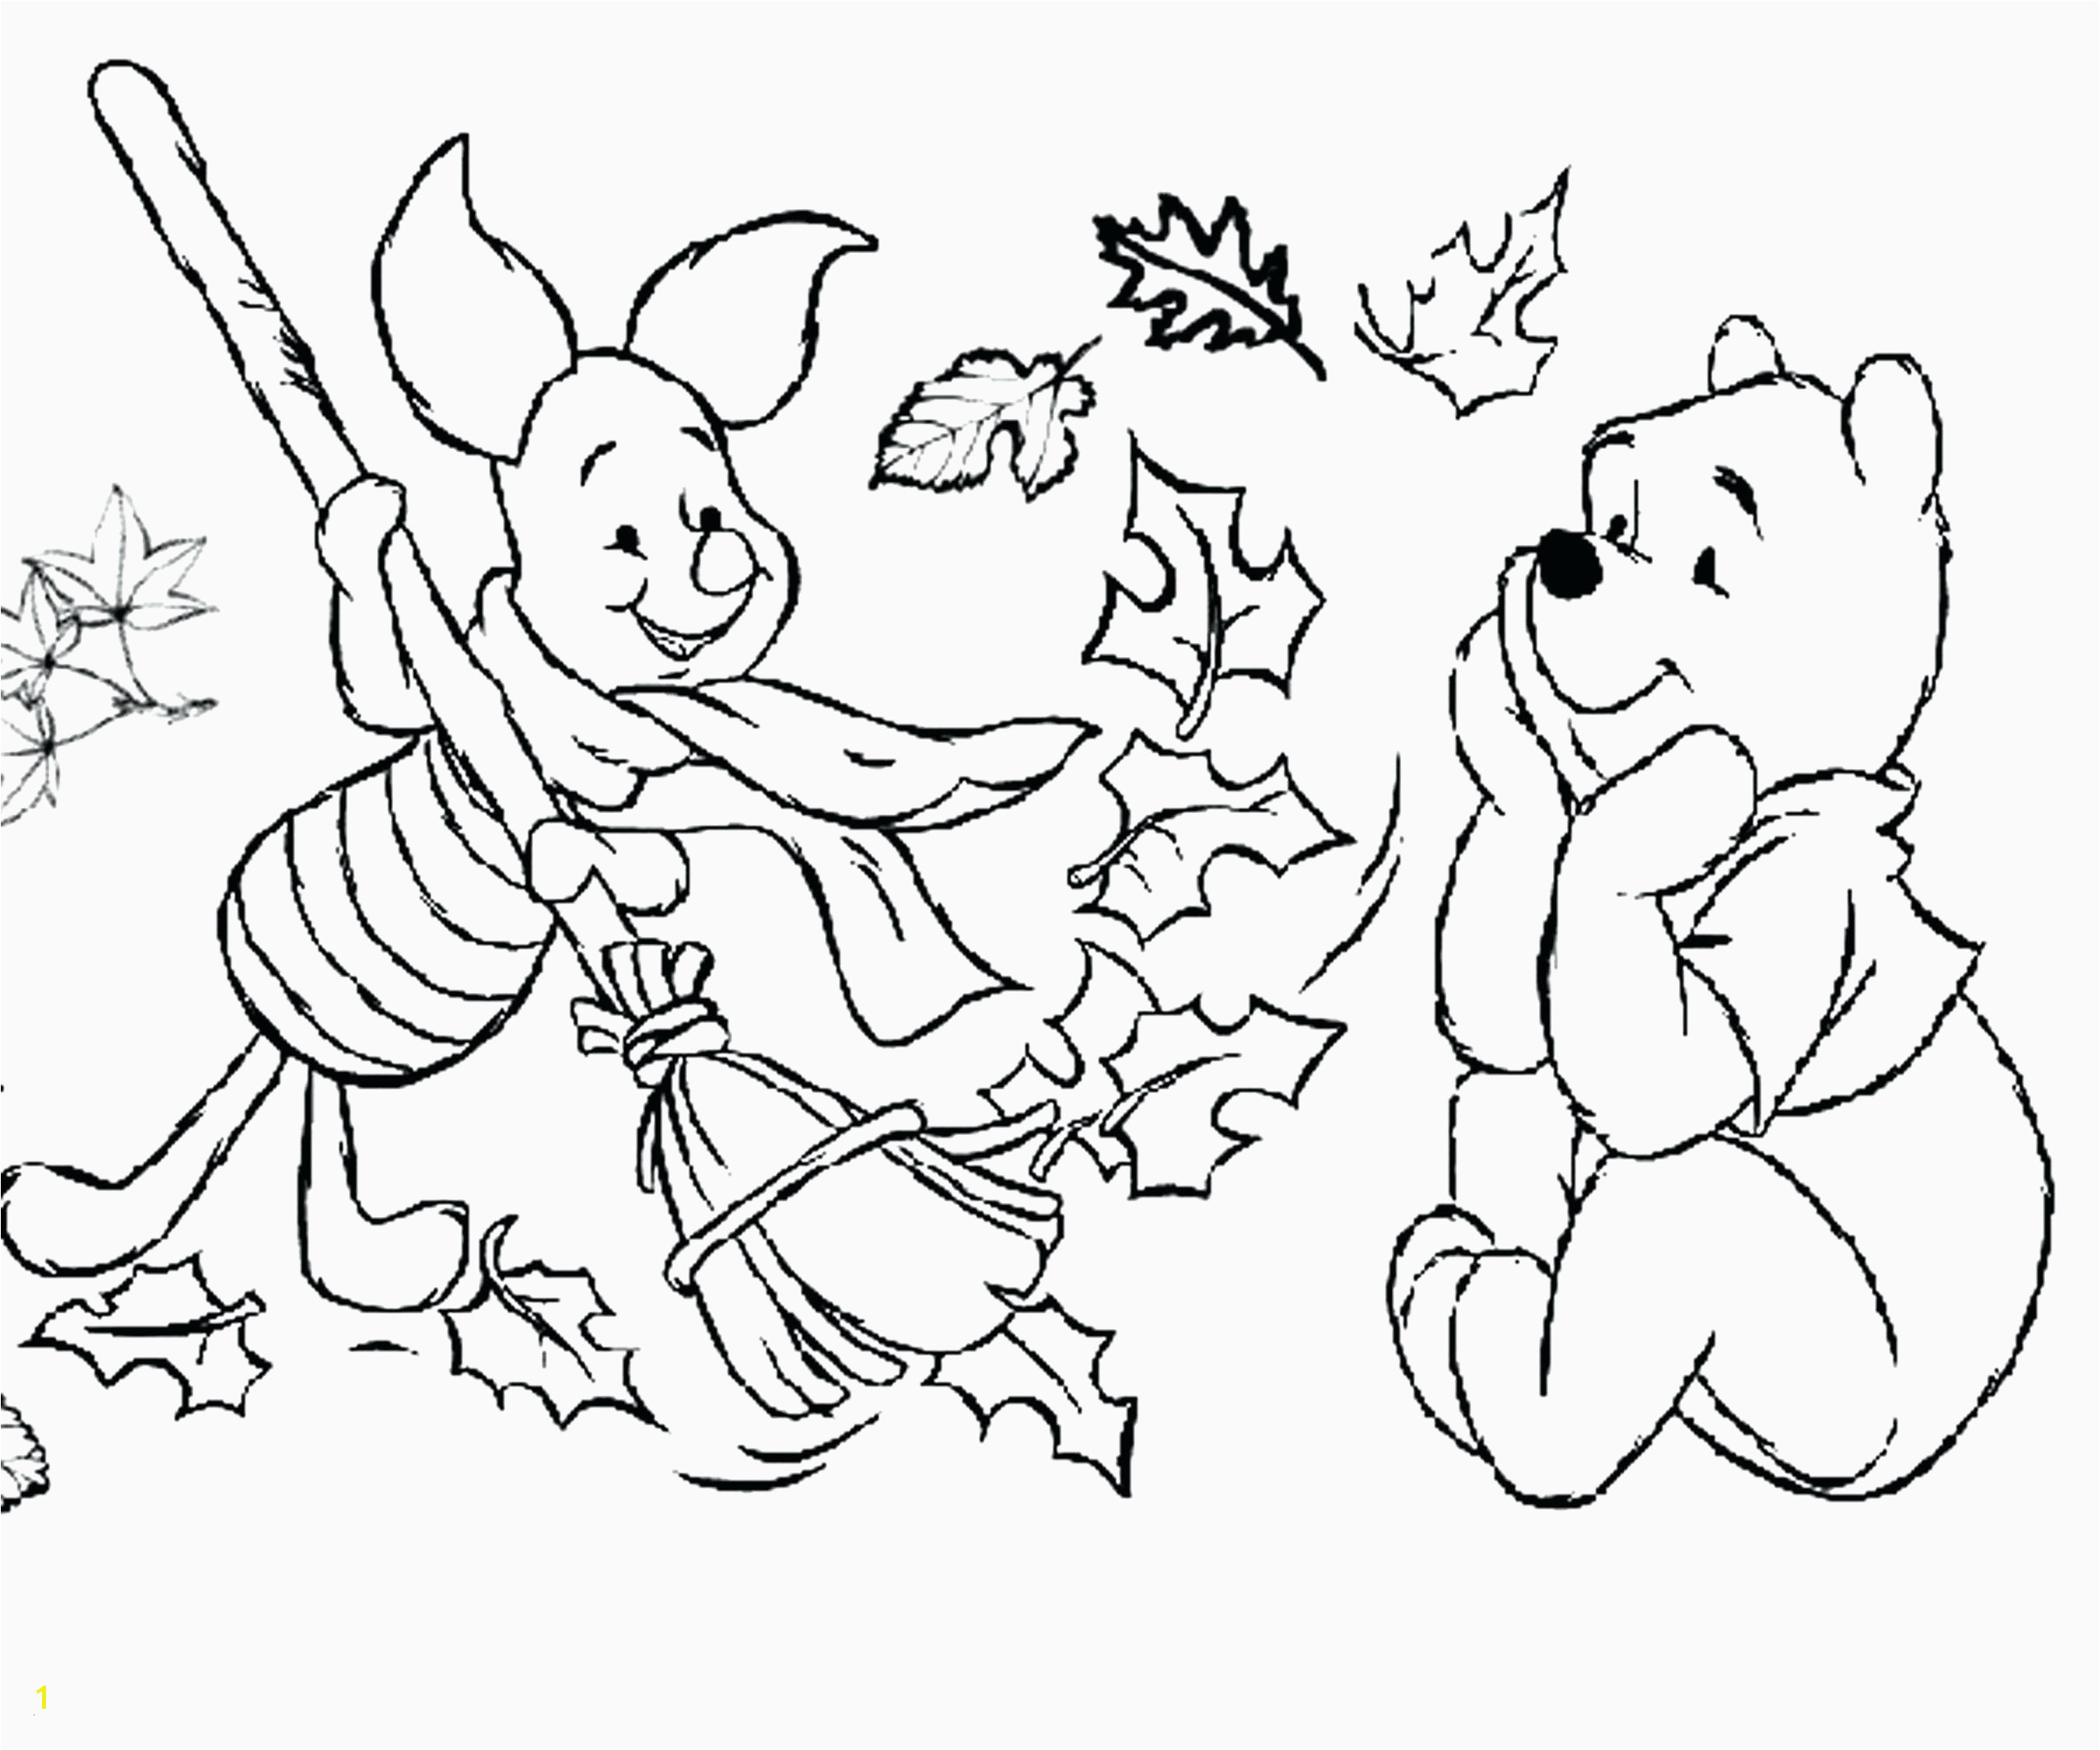 Cookies Coloring Pages Coloring Pages for Children Great Preschool Fall Coloring Pages 0d Collection